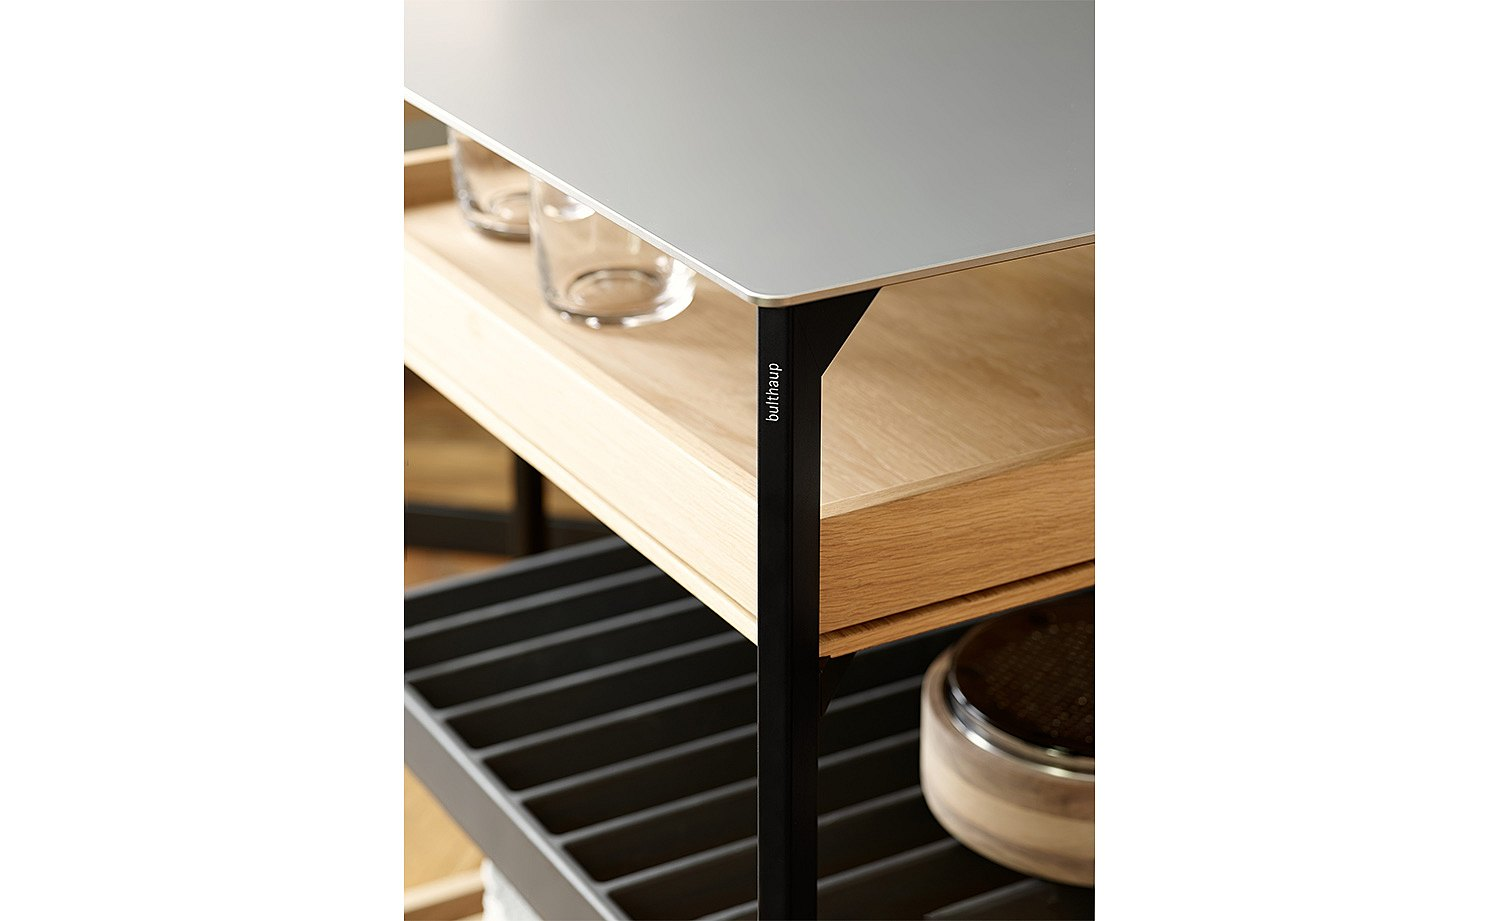 Combine materials as you like: stainless steel top, wooden pull-out, and aluminum grid